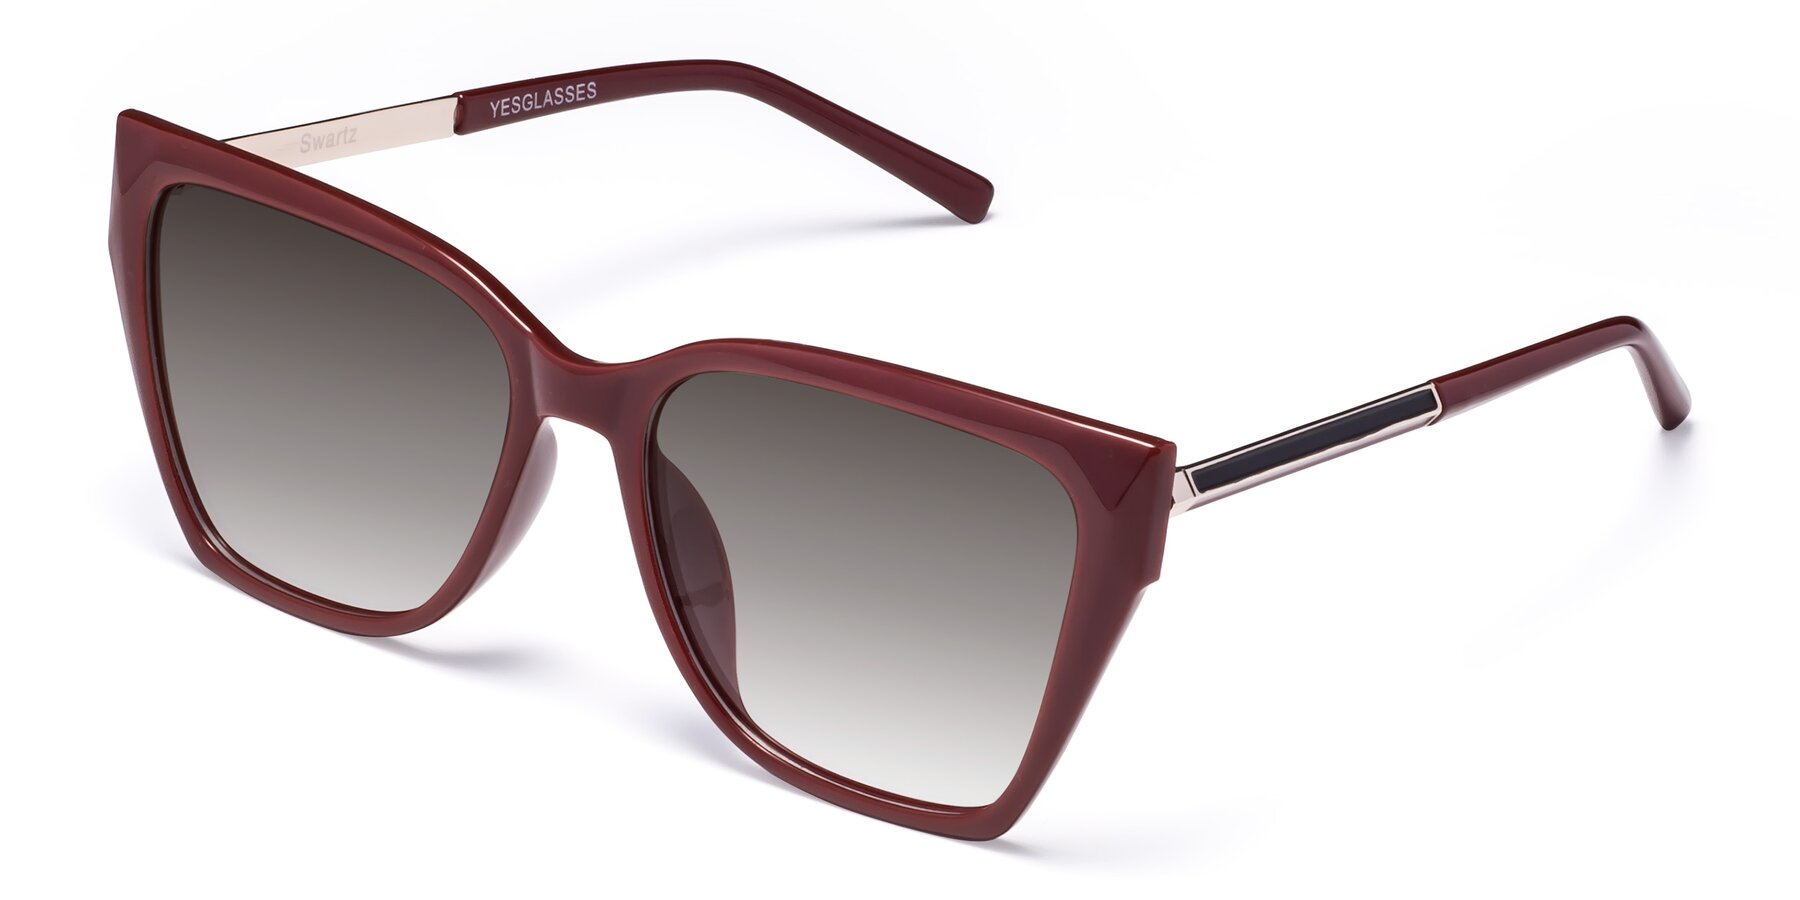 Angle of Swartz in Wine with Gray Gradient Lenses